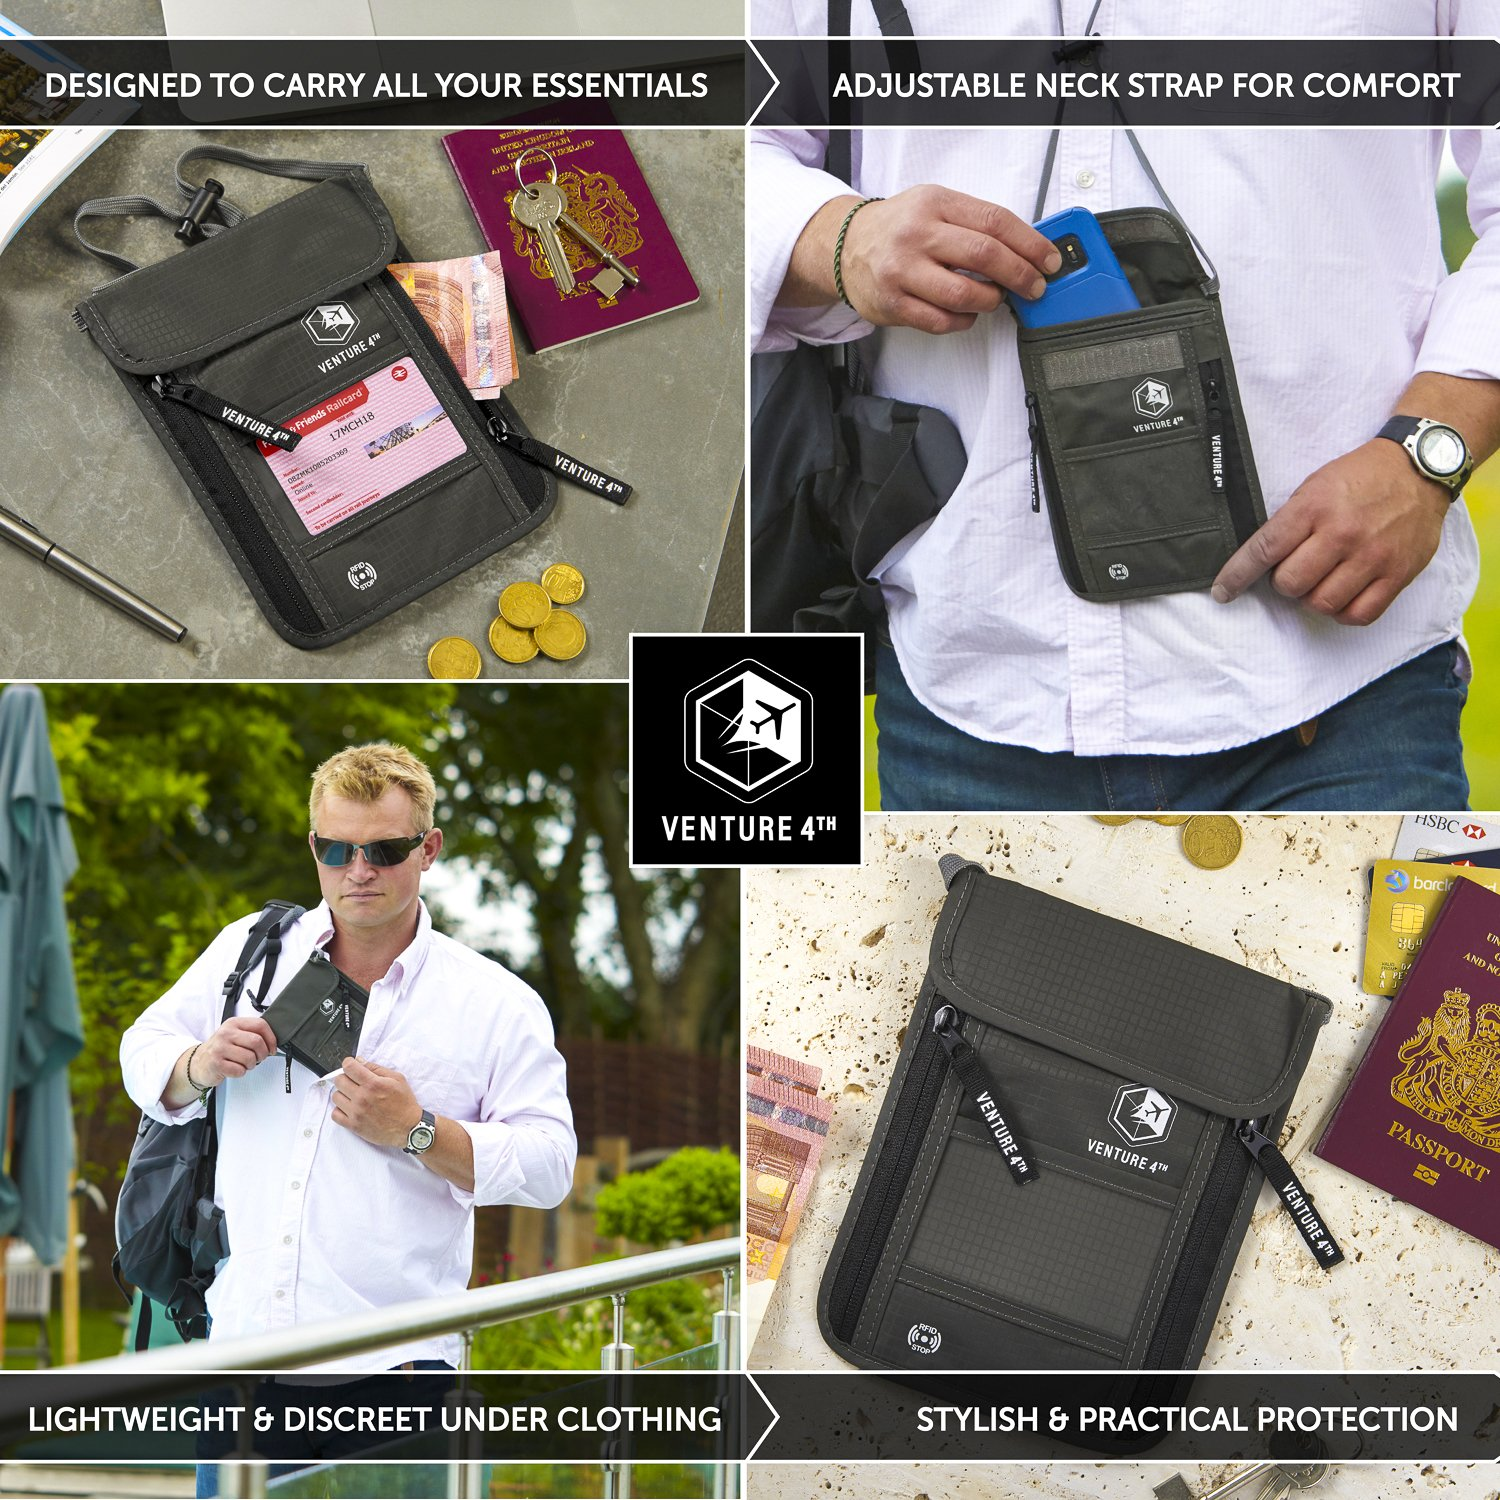 Venture 4th Travel Neck Pouch With RFID Blocking - Travel Wallet Passport Holder (Grey) by VENTURE 4TH (Image #5)